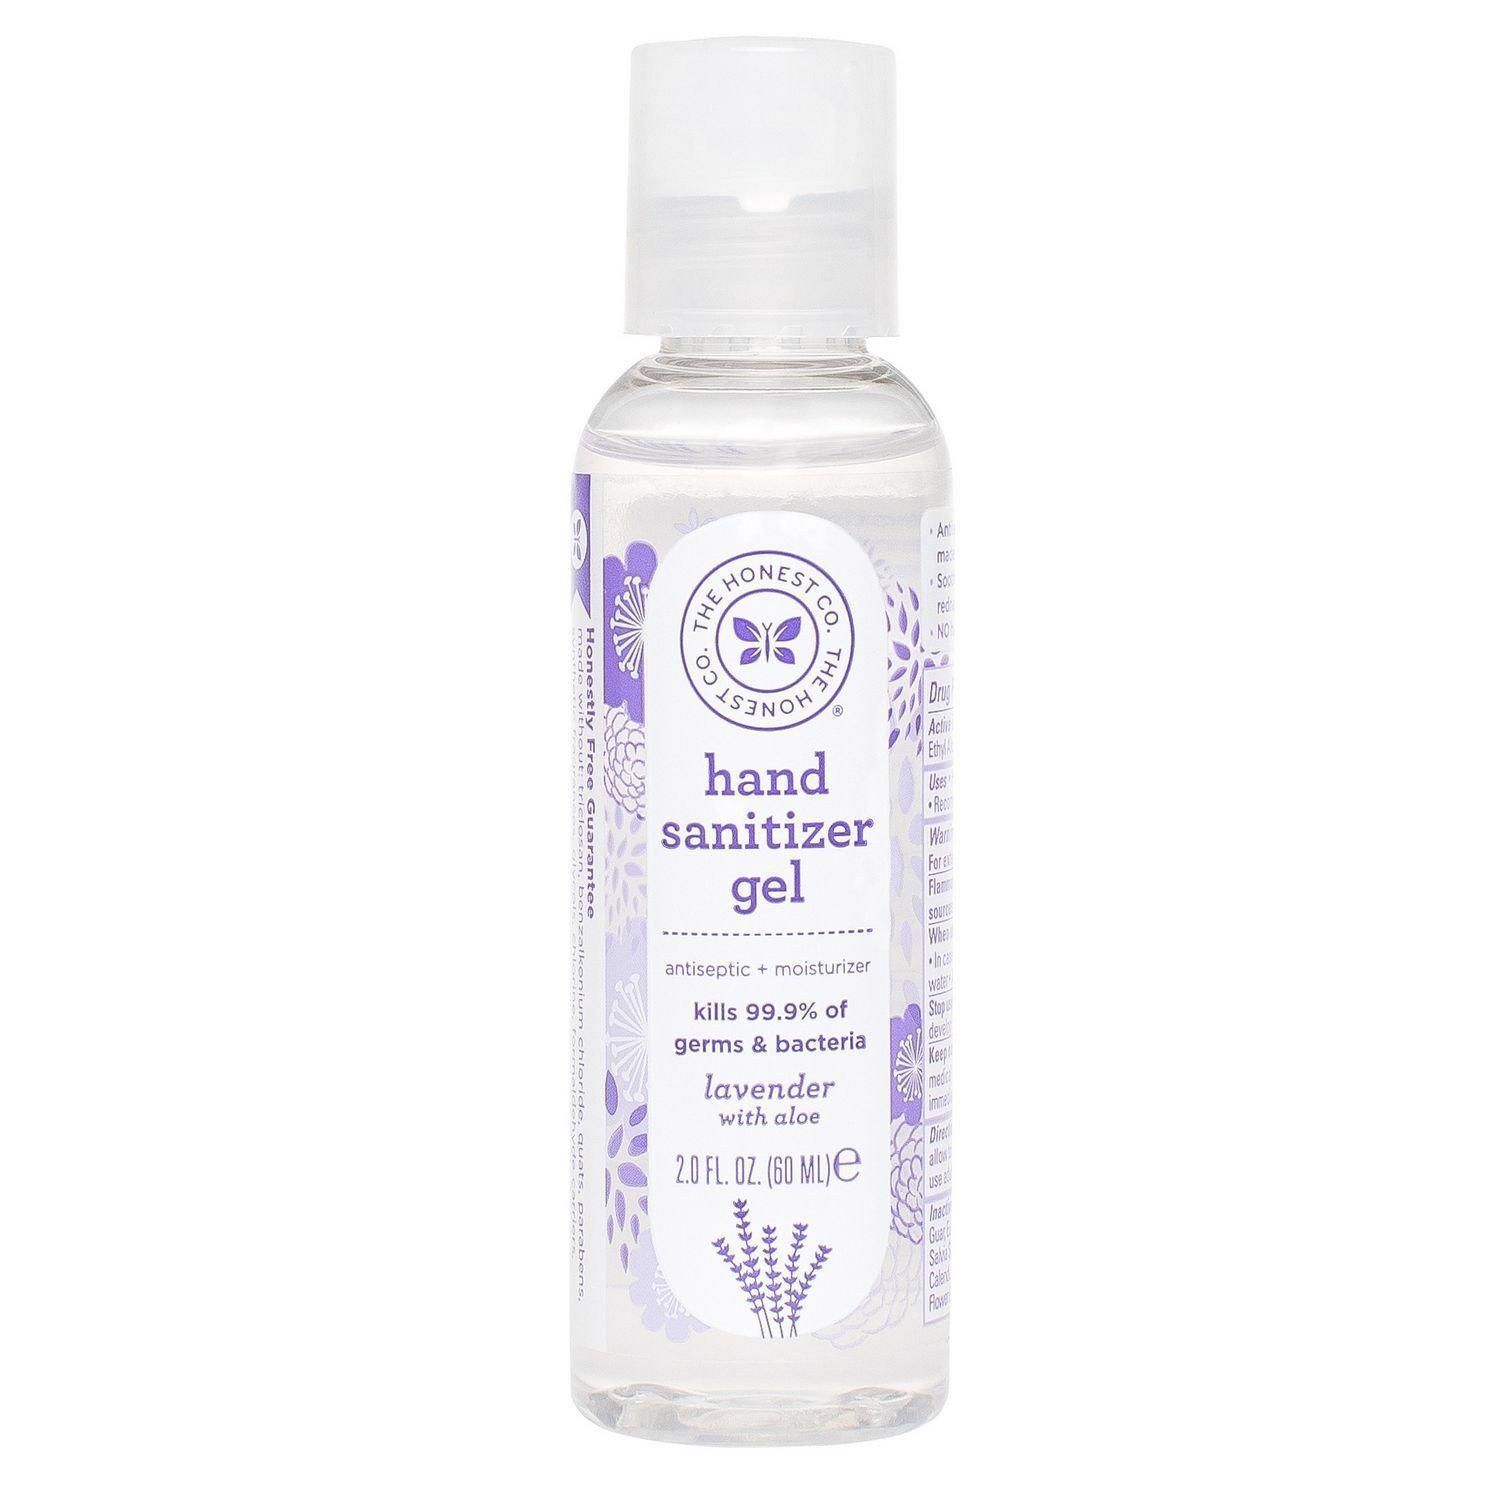 Sunshay Refreshing Hand Gel Antibacterial Gel Hand Sanitizer